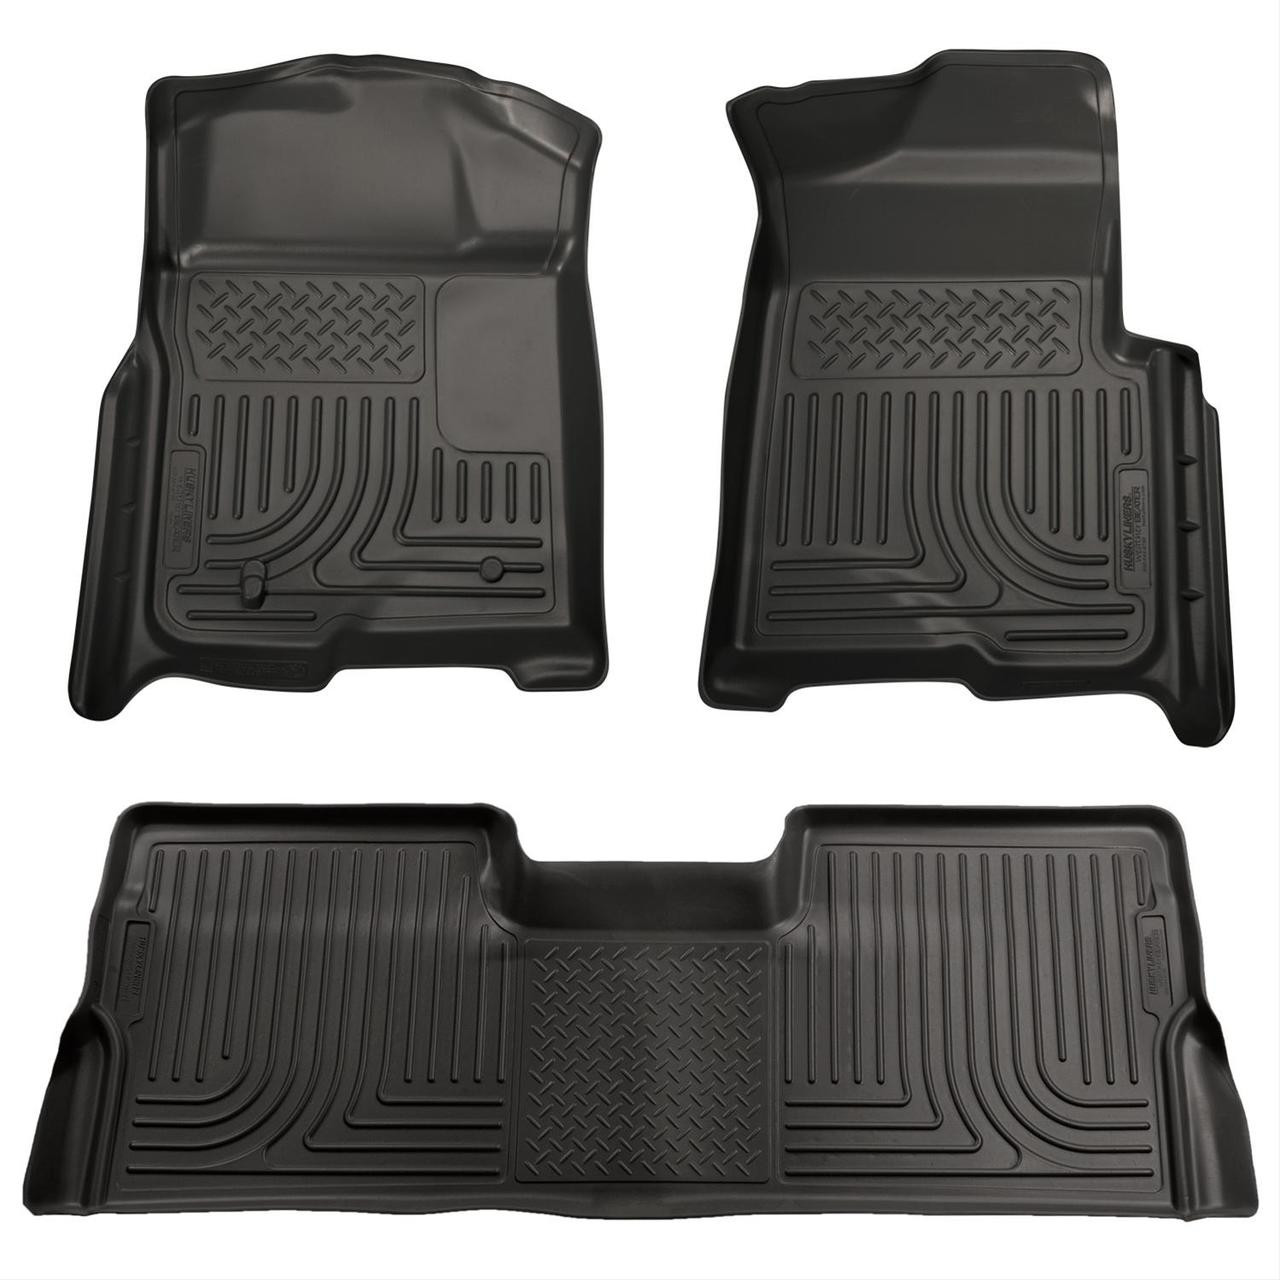 08-10 FORD SD CREW CAB W/O MANUAL 4X4 TRANSFER CASE WEATHERBEATER FRONT & 2ND SEAT FLR LNR 3PC BLACK